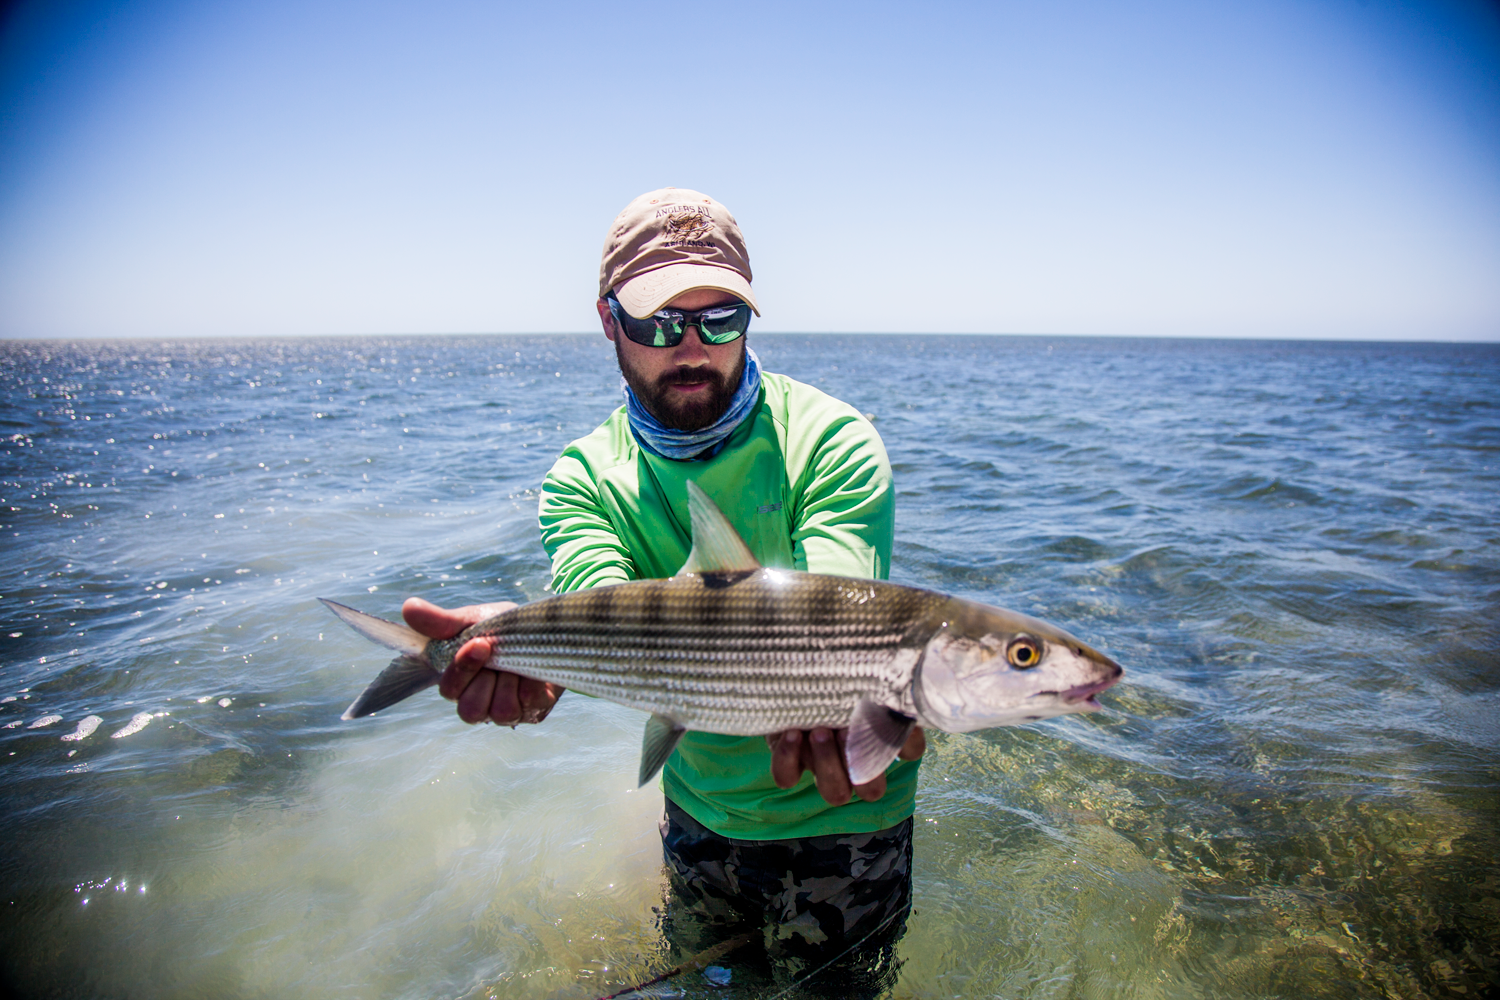 The Florida Keys are known for big Bonefish and we found them.